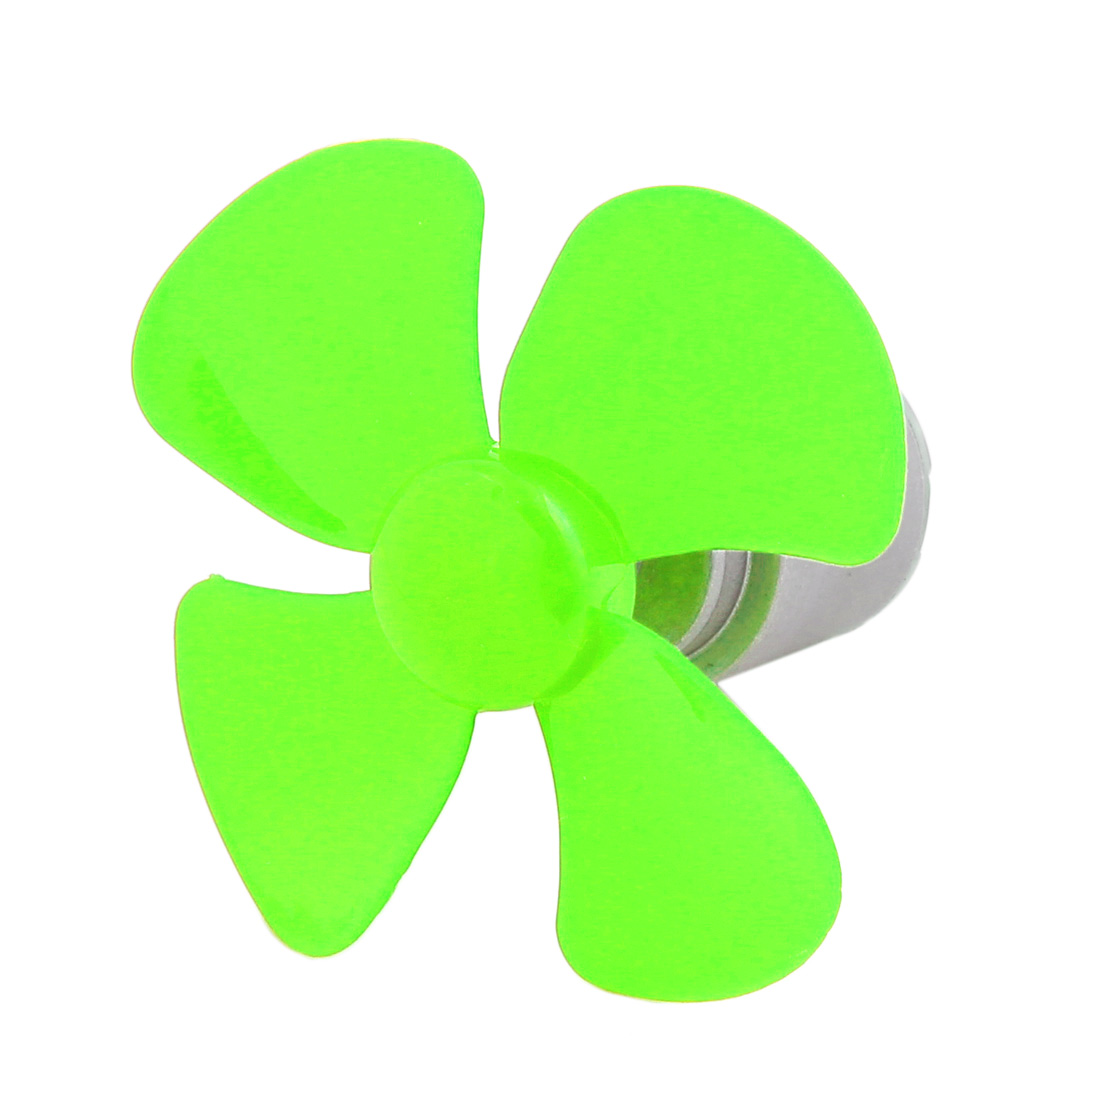 DC 3V 0.13A 19500RPM Green Strong Force Motor 4 Vanes 56mm Dia Propeller for RC Aircraft